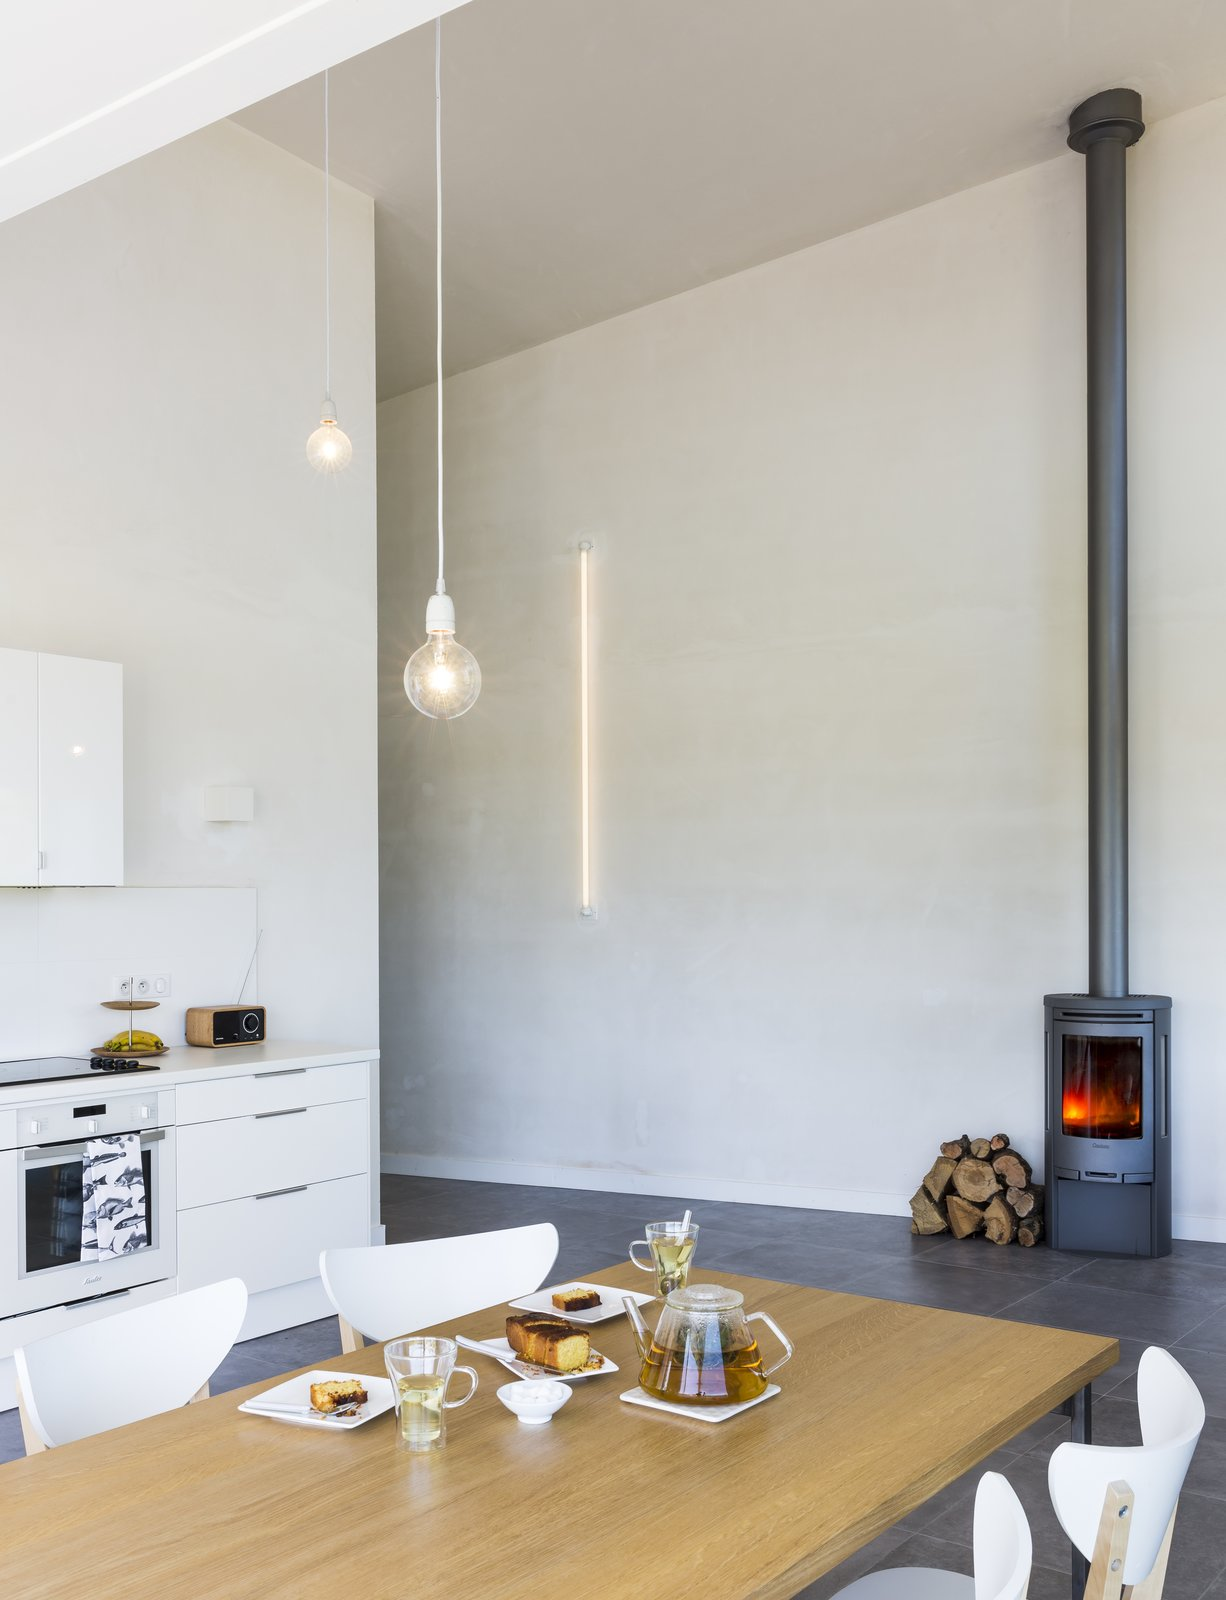 A C500 wood-burning stove from Contura creates a cozy atmosphere.  Photo 5 of 10 in Framing the Landscape and Capturing Light, a Photographer's Home and Studio Echoes His Work